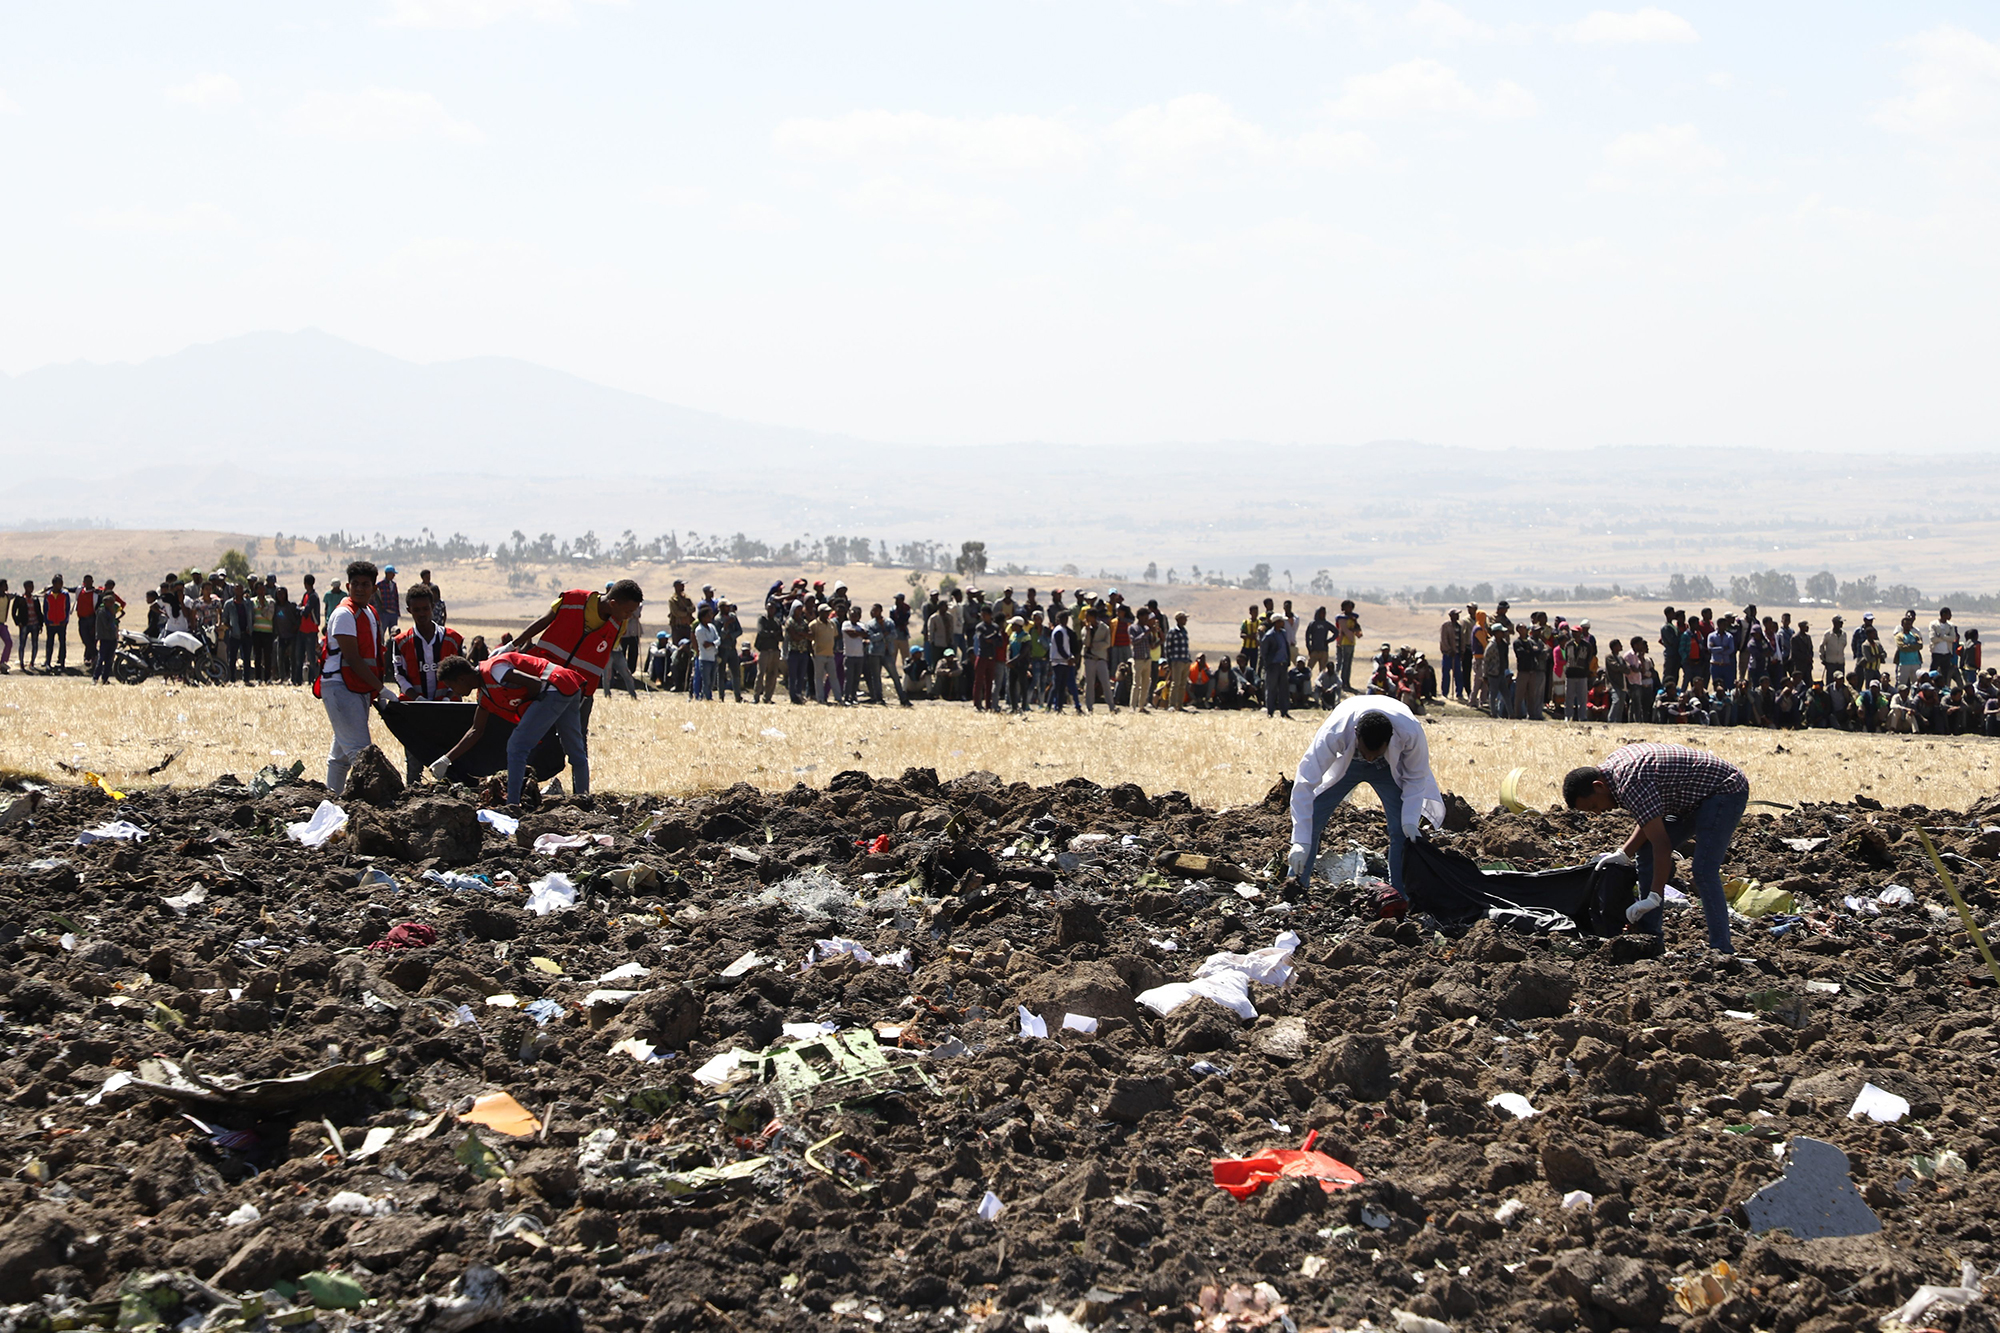 KENYA-ETHIOPIA-AIRPLANE-ACCIDENT